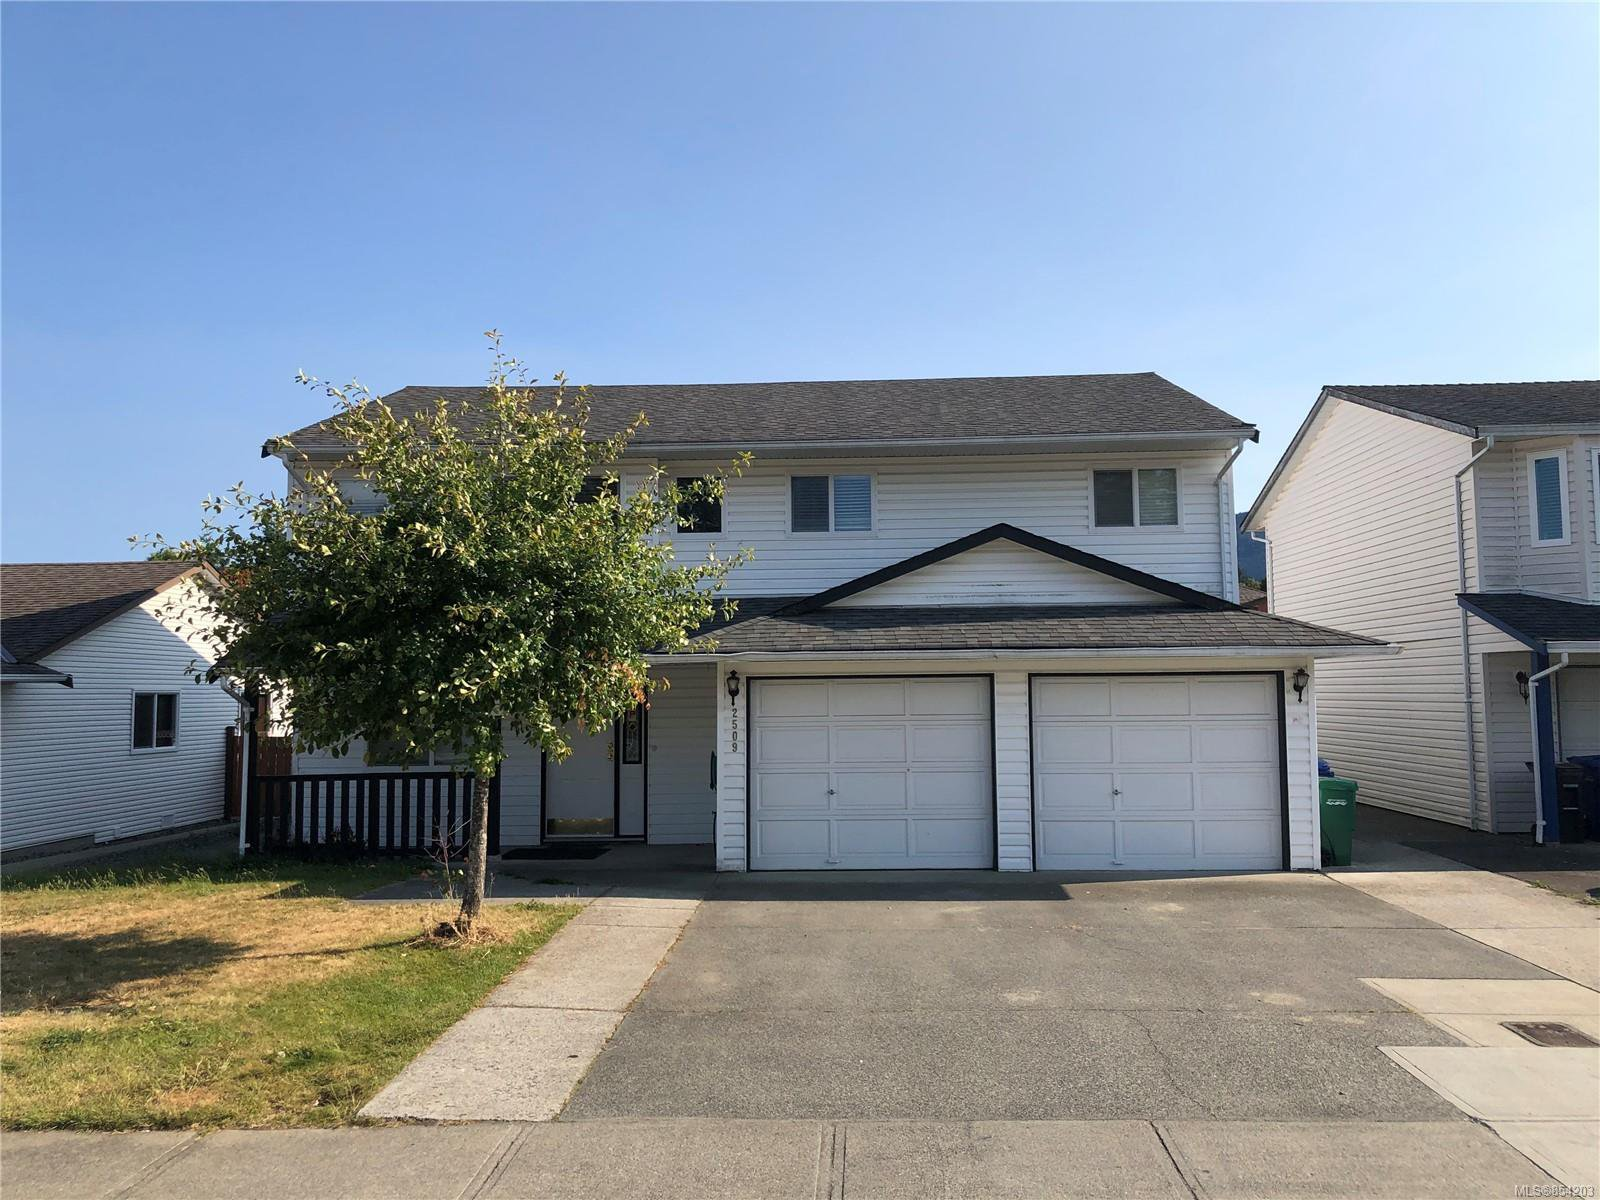 Main Photo: 2509 Nadely Cres in : Na Diver Lake Single Family Detached for sale (Nanaimo)  : MLS®# 854203